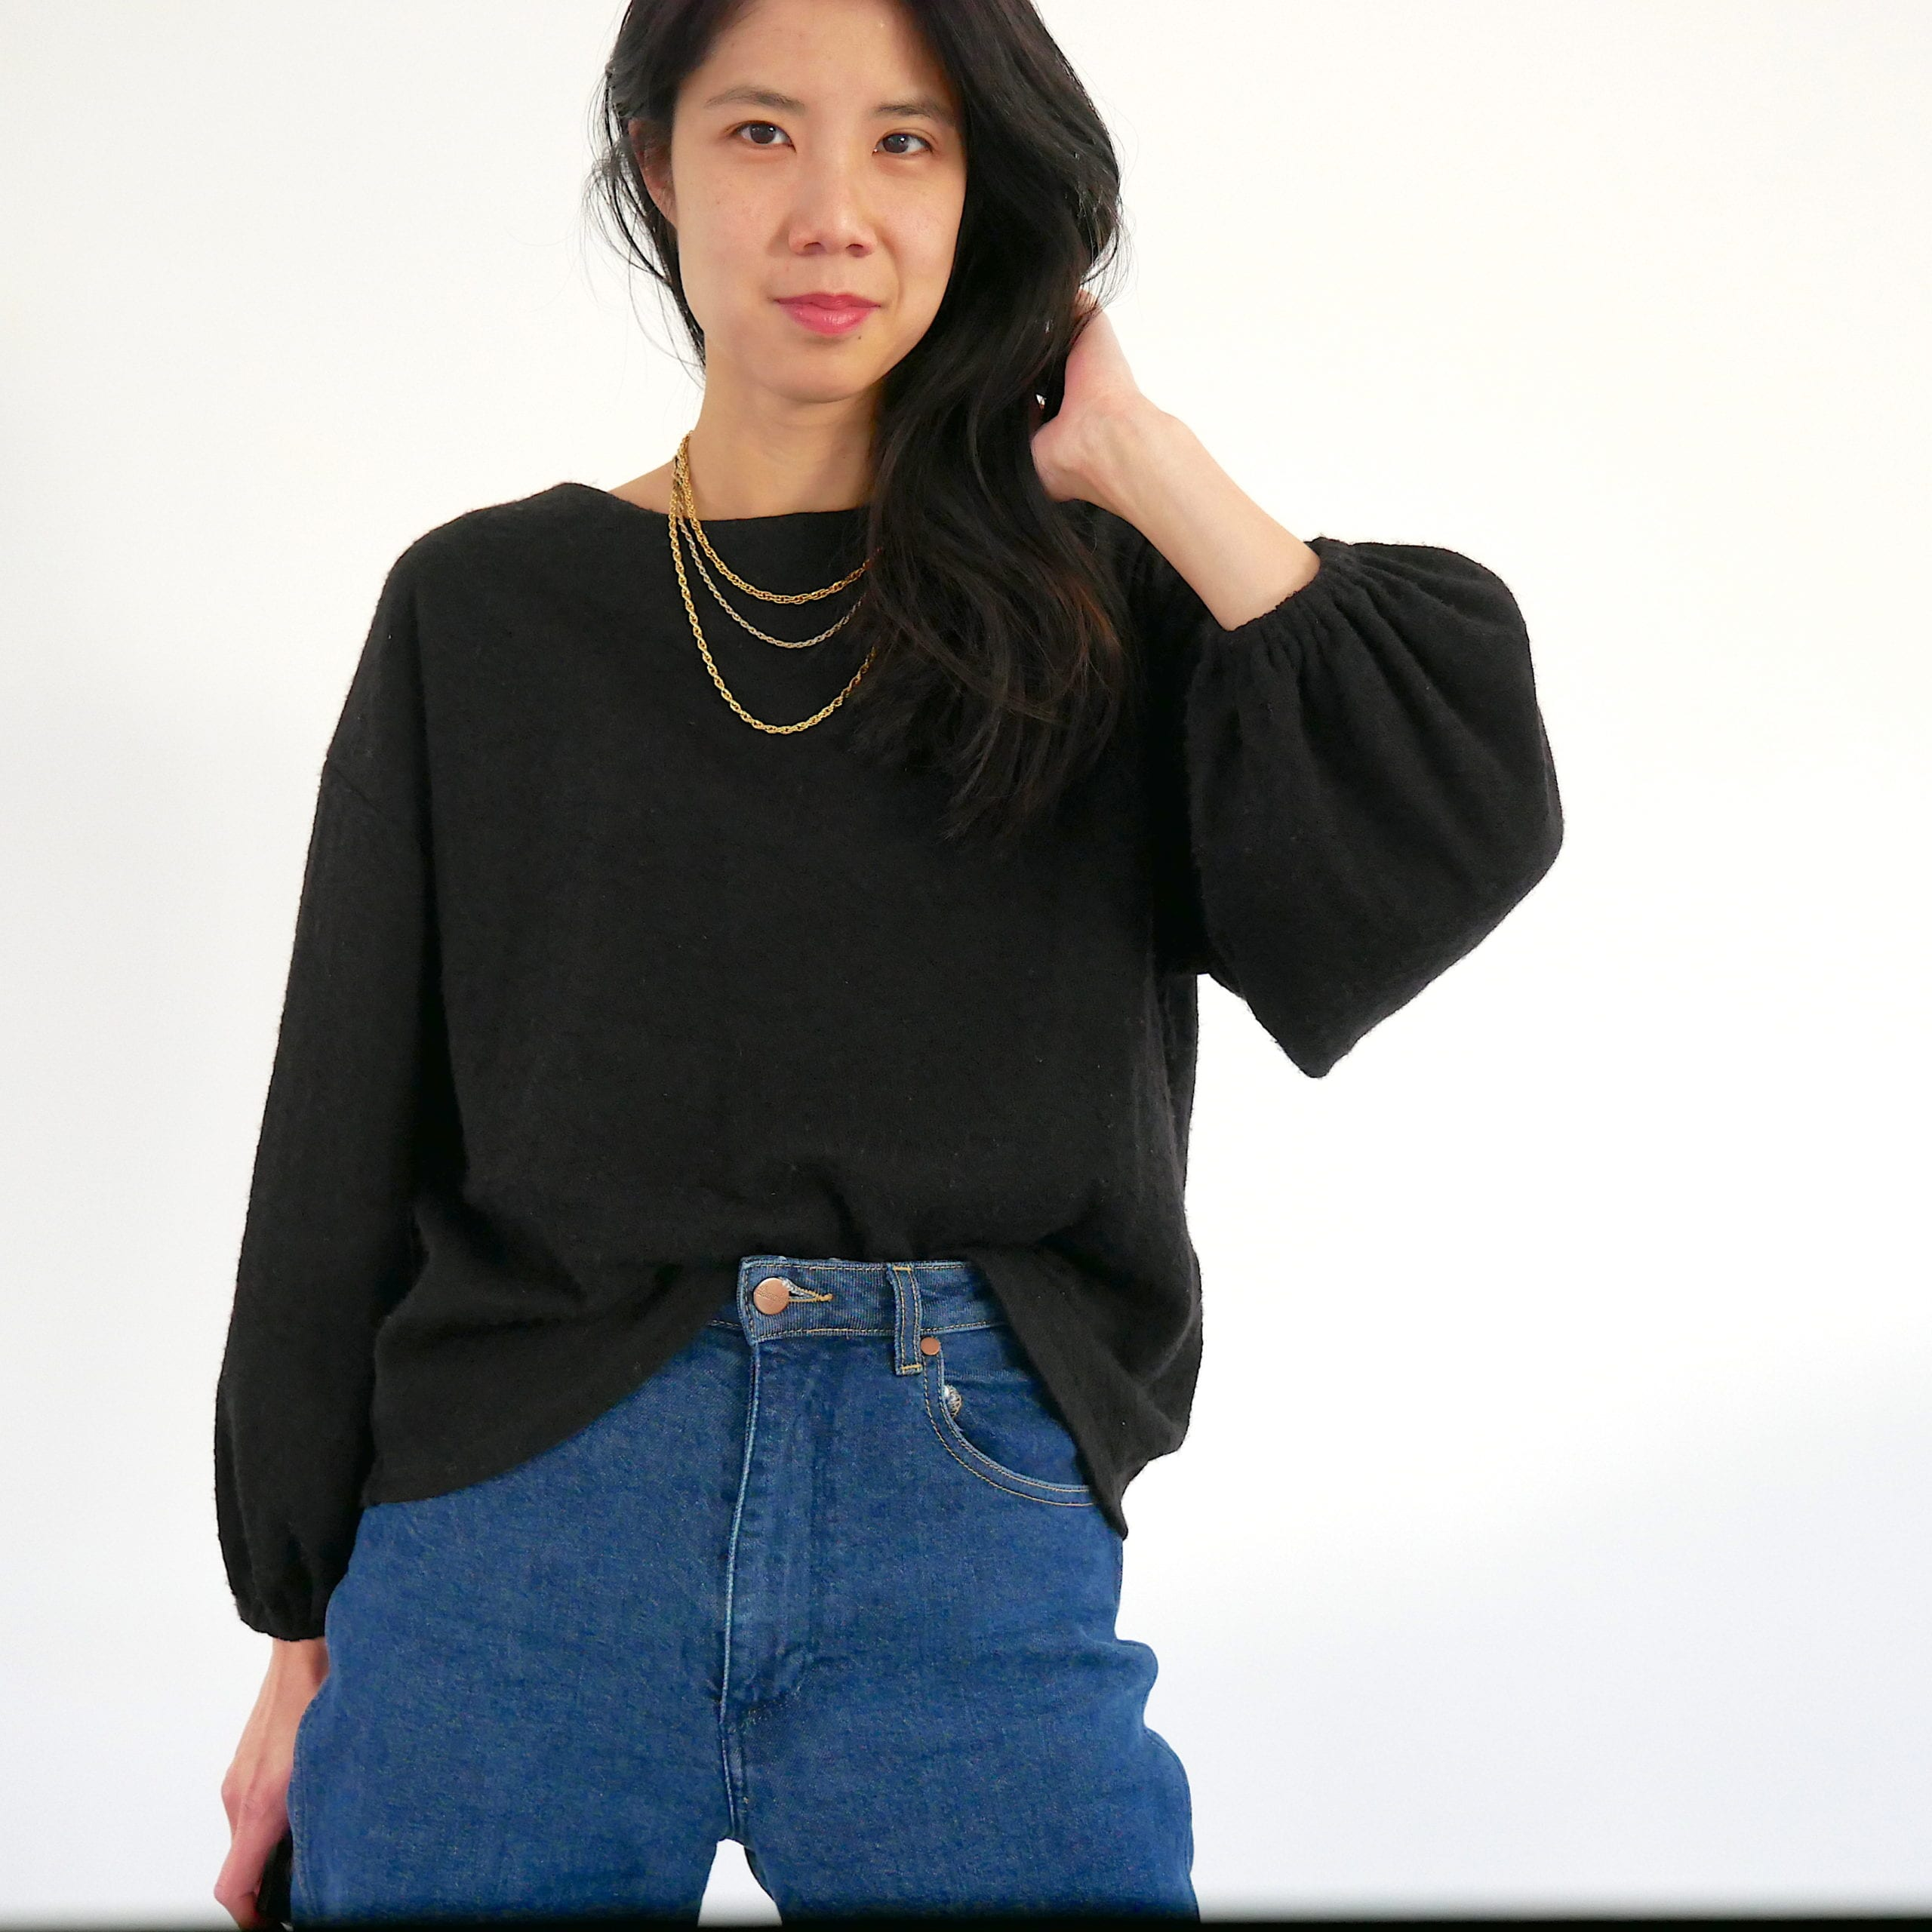 Black Just Patterns Tyra sweater by Time to Sew worn with a gold necklace stack and mom jeans